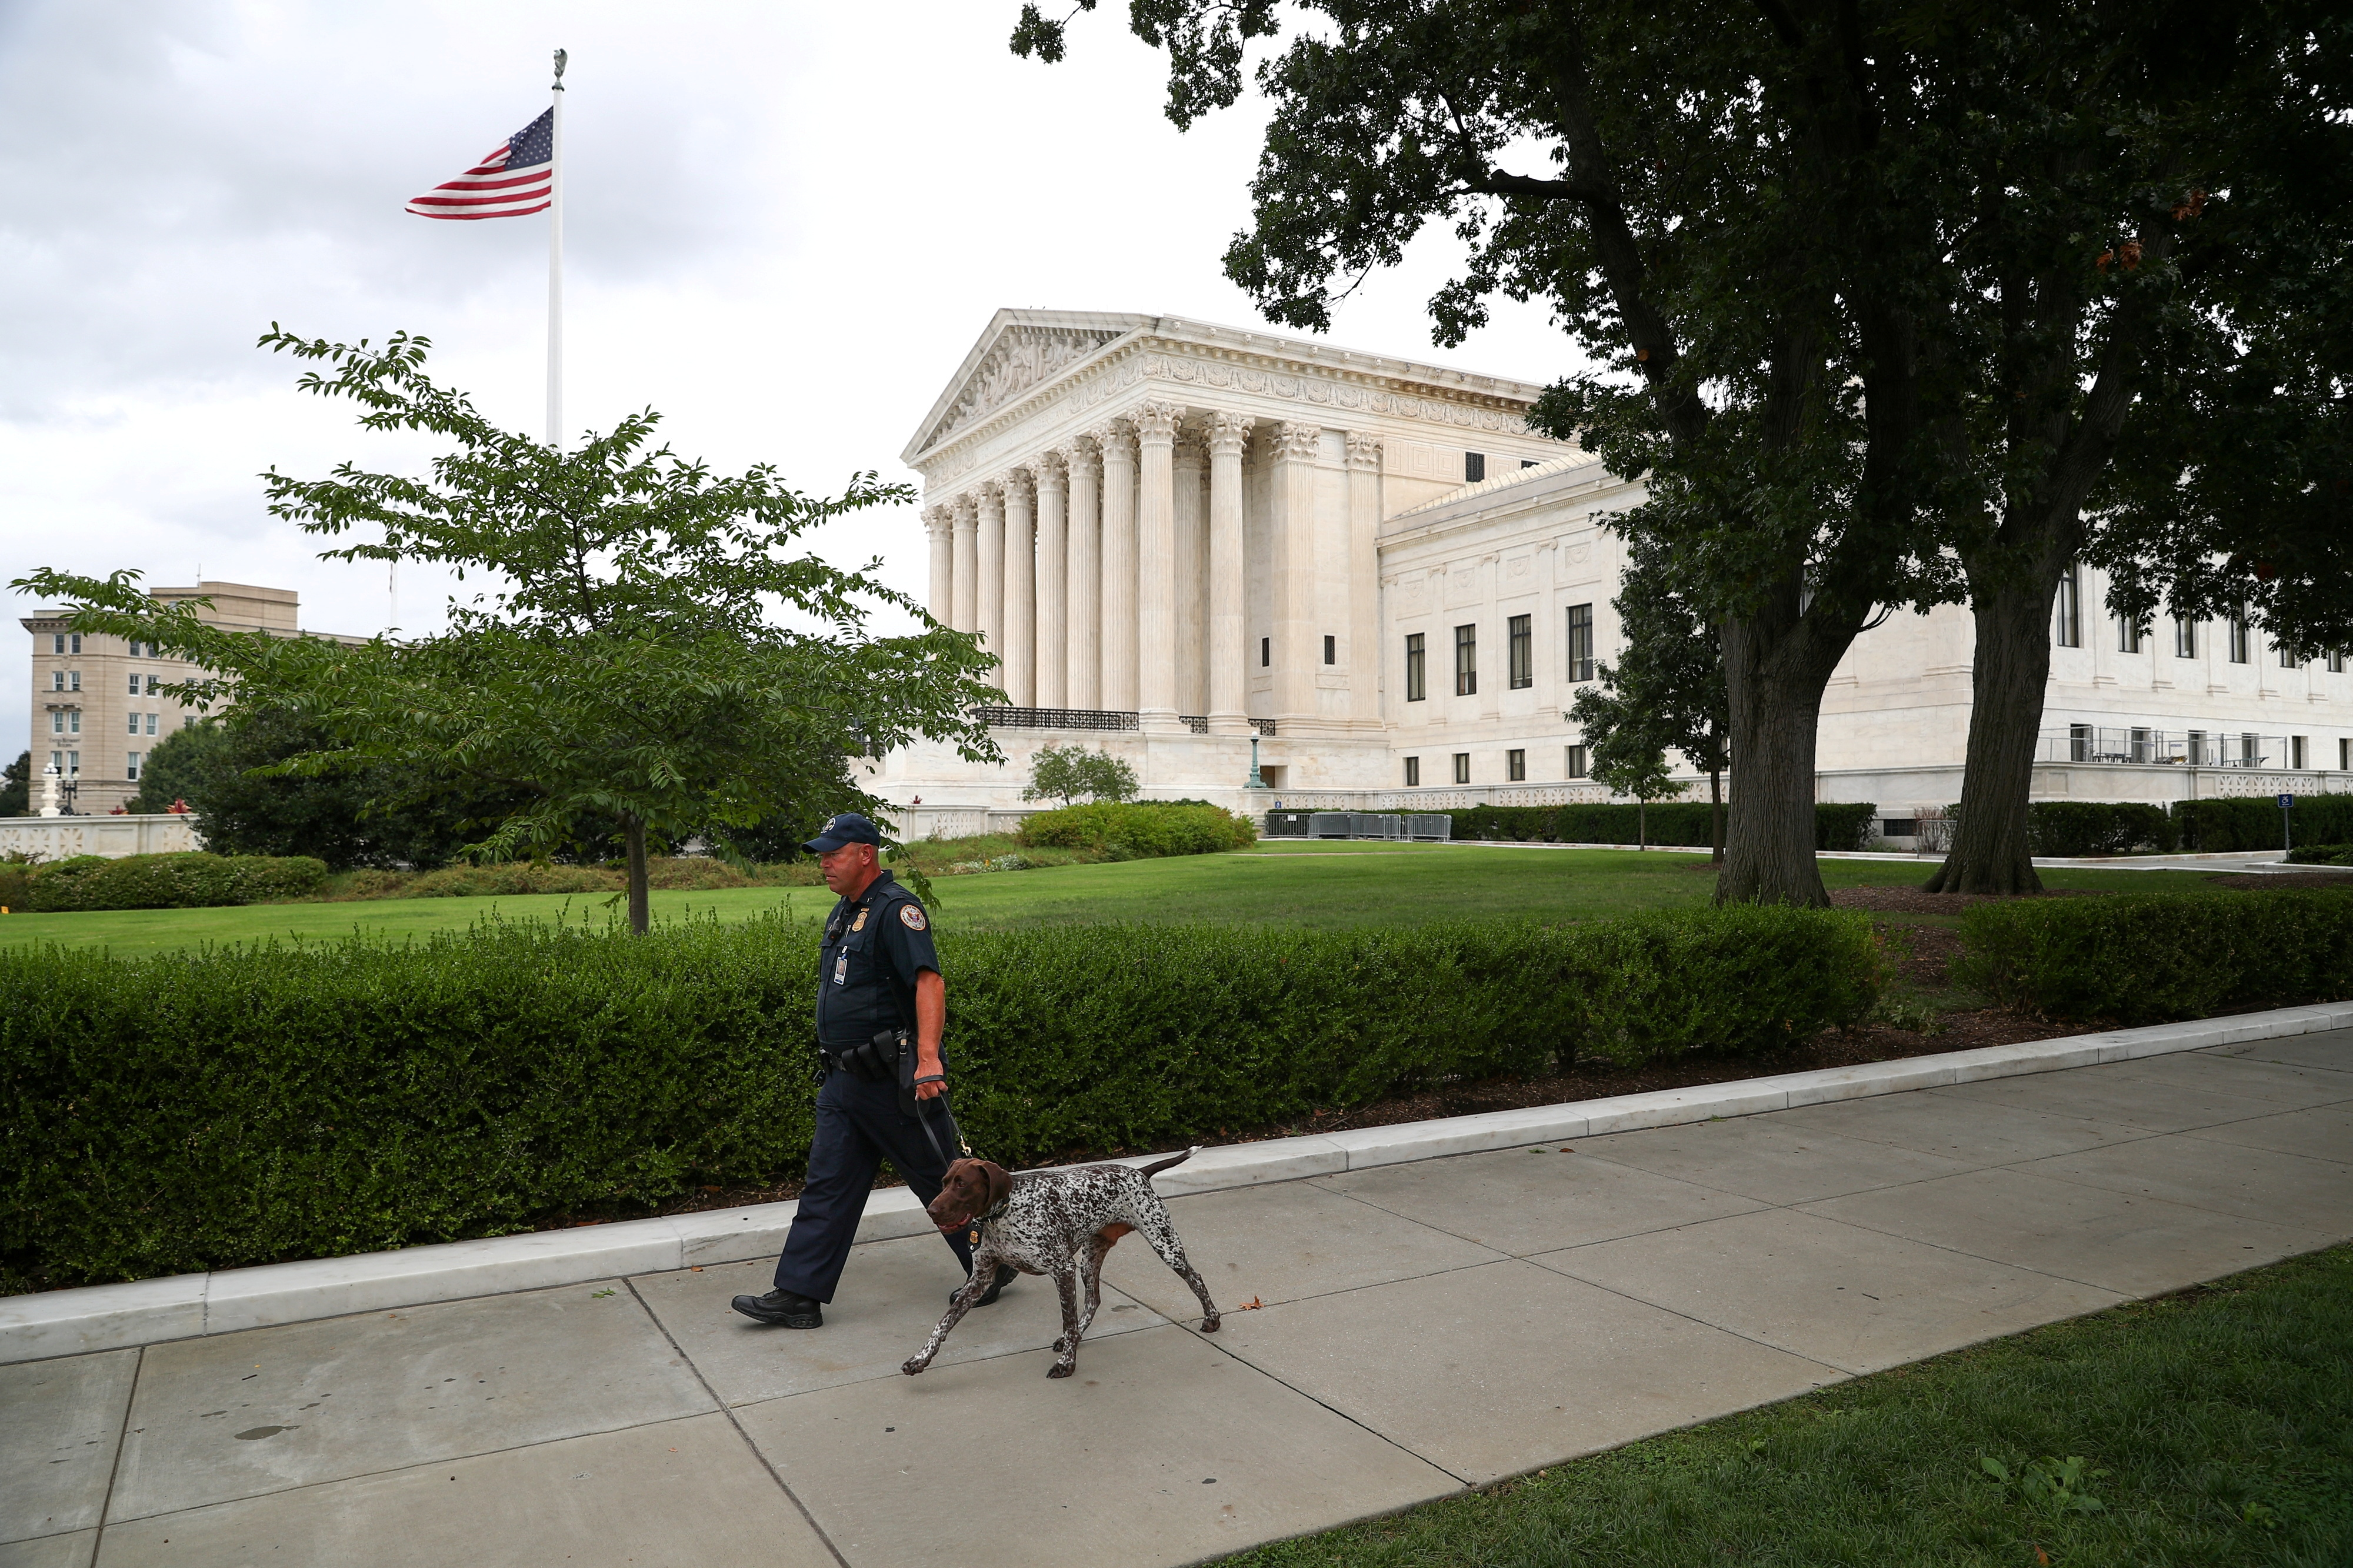 A U.S. Capitol Police Officer walks with a dog near the U.S. Supreme Court in Washington, U.S., September 1, 2021. REUTERS/Tom Brenner/File Photo